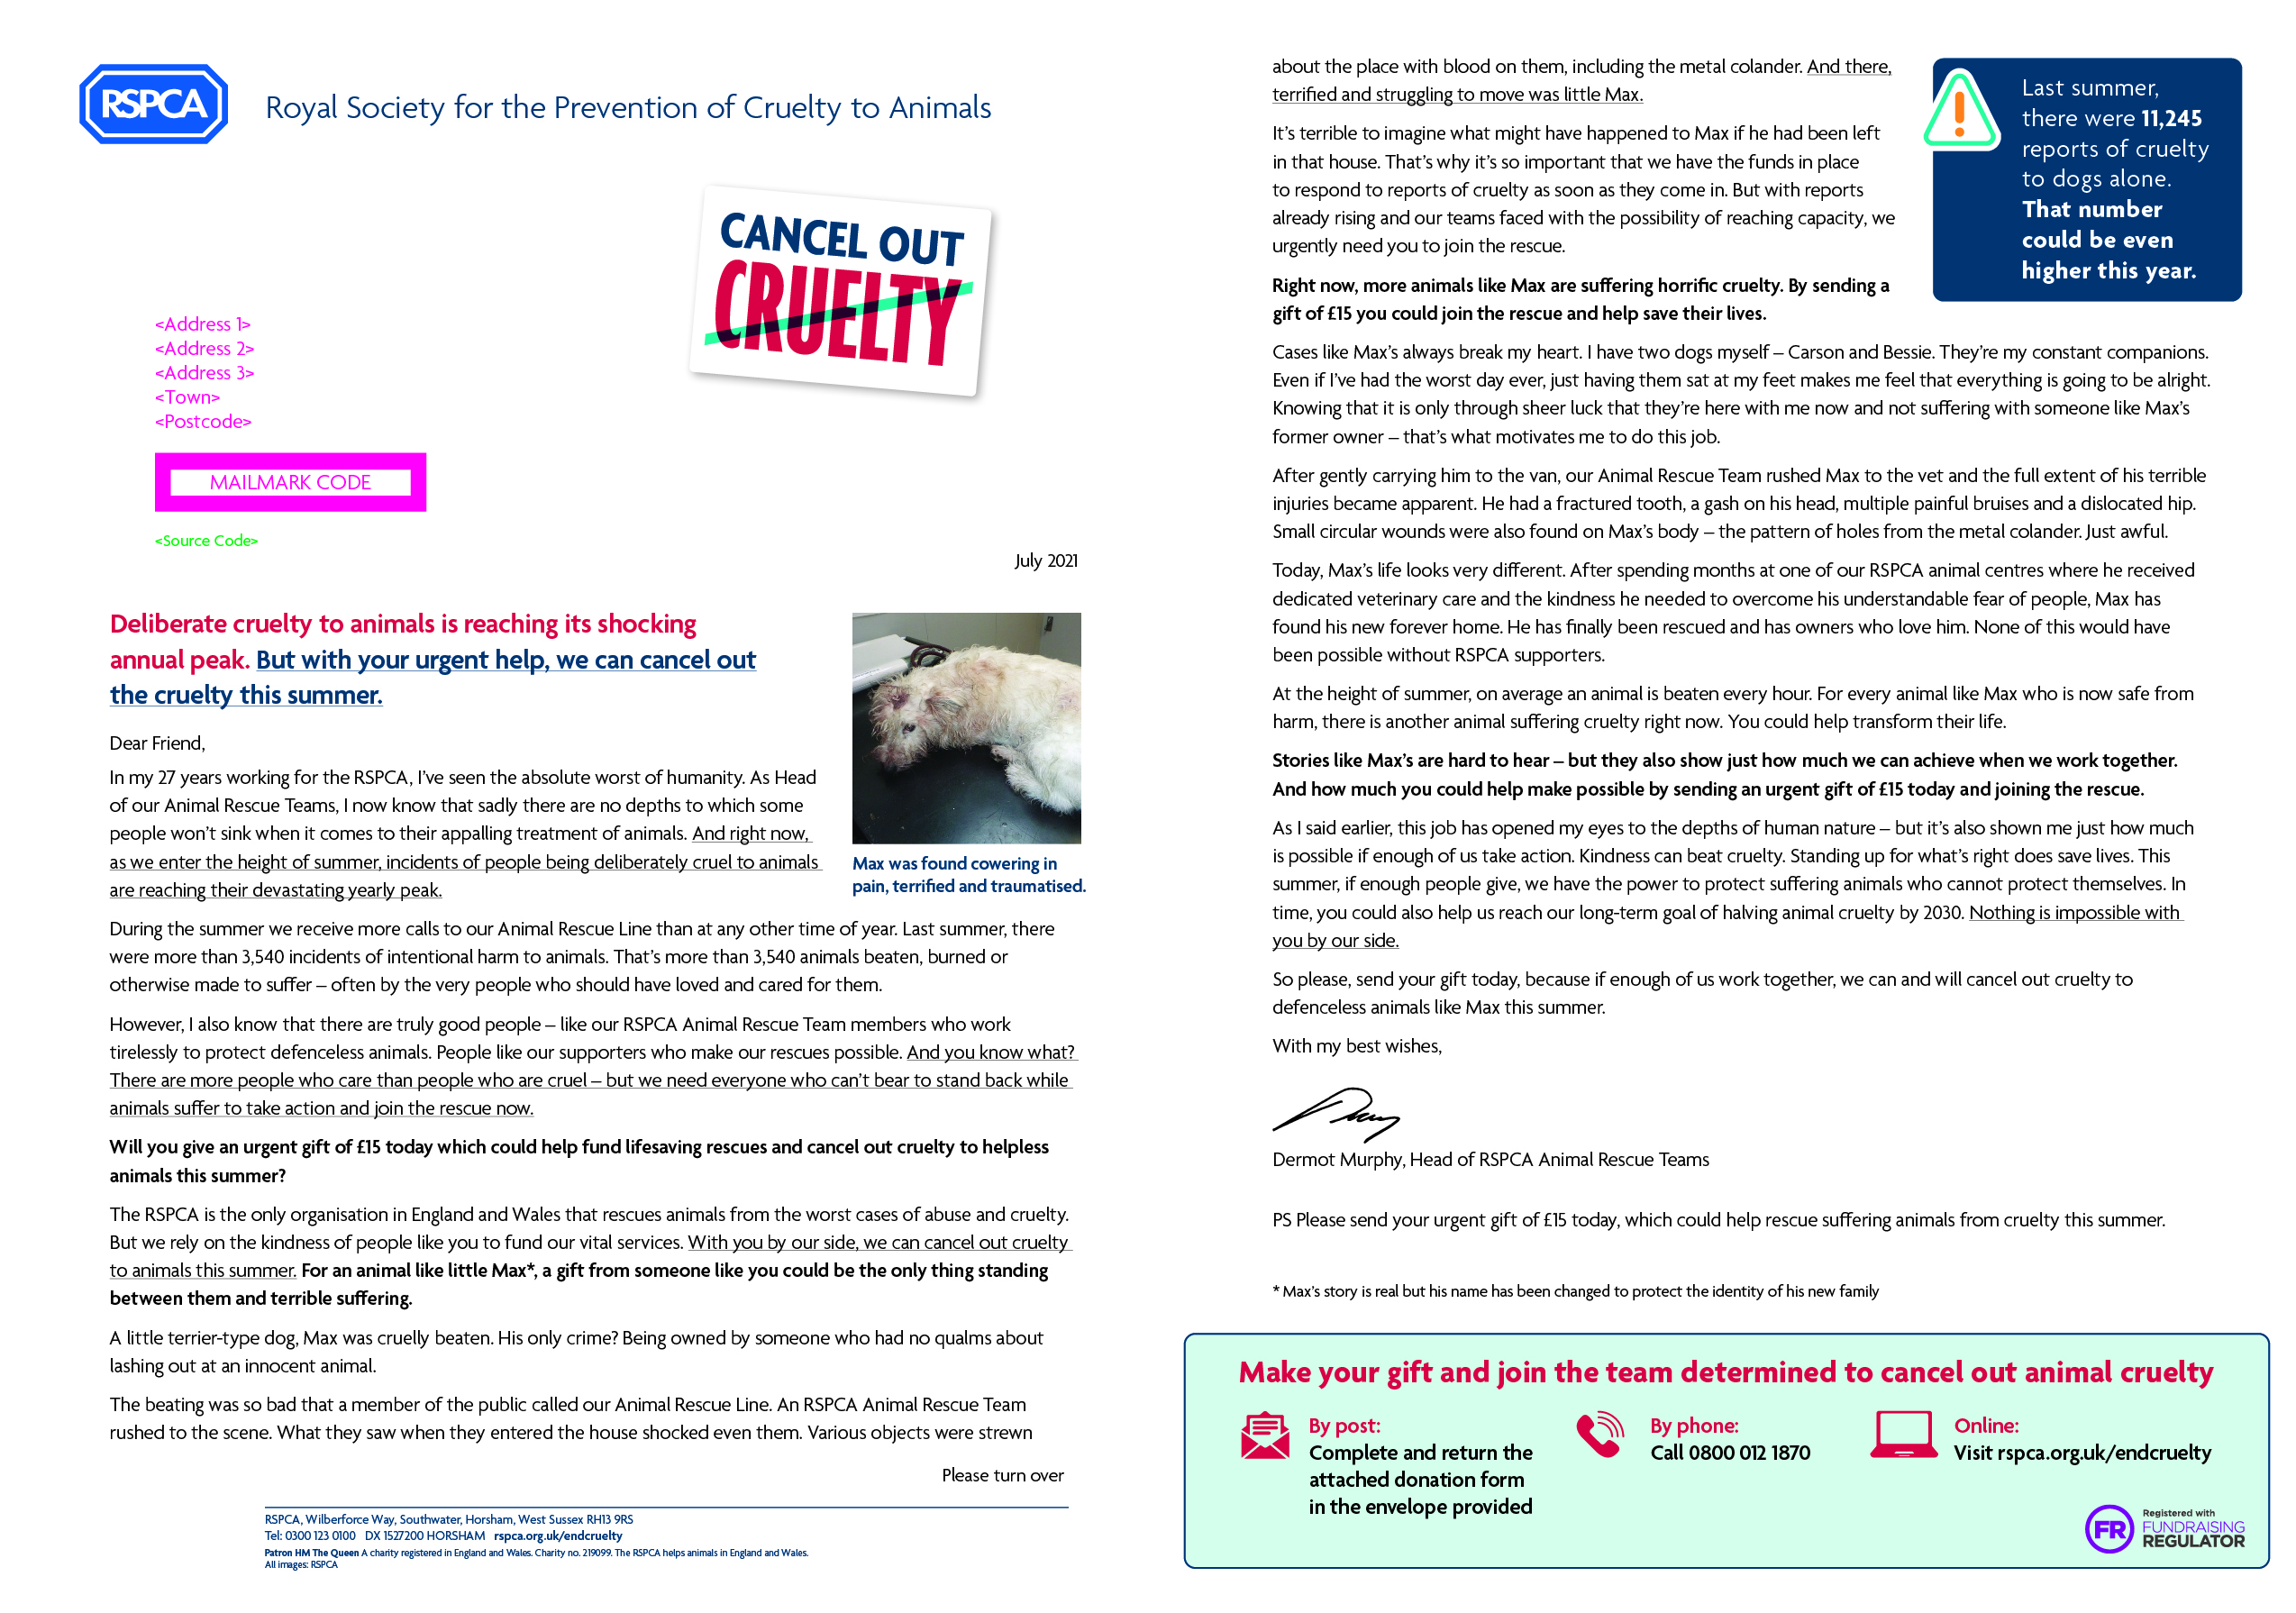 image of letter sent by RSPCA appealing for donations